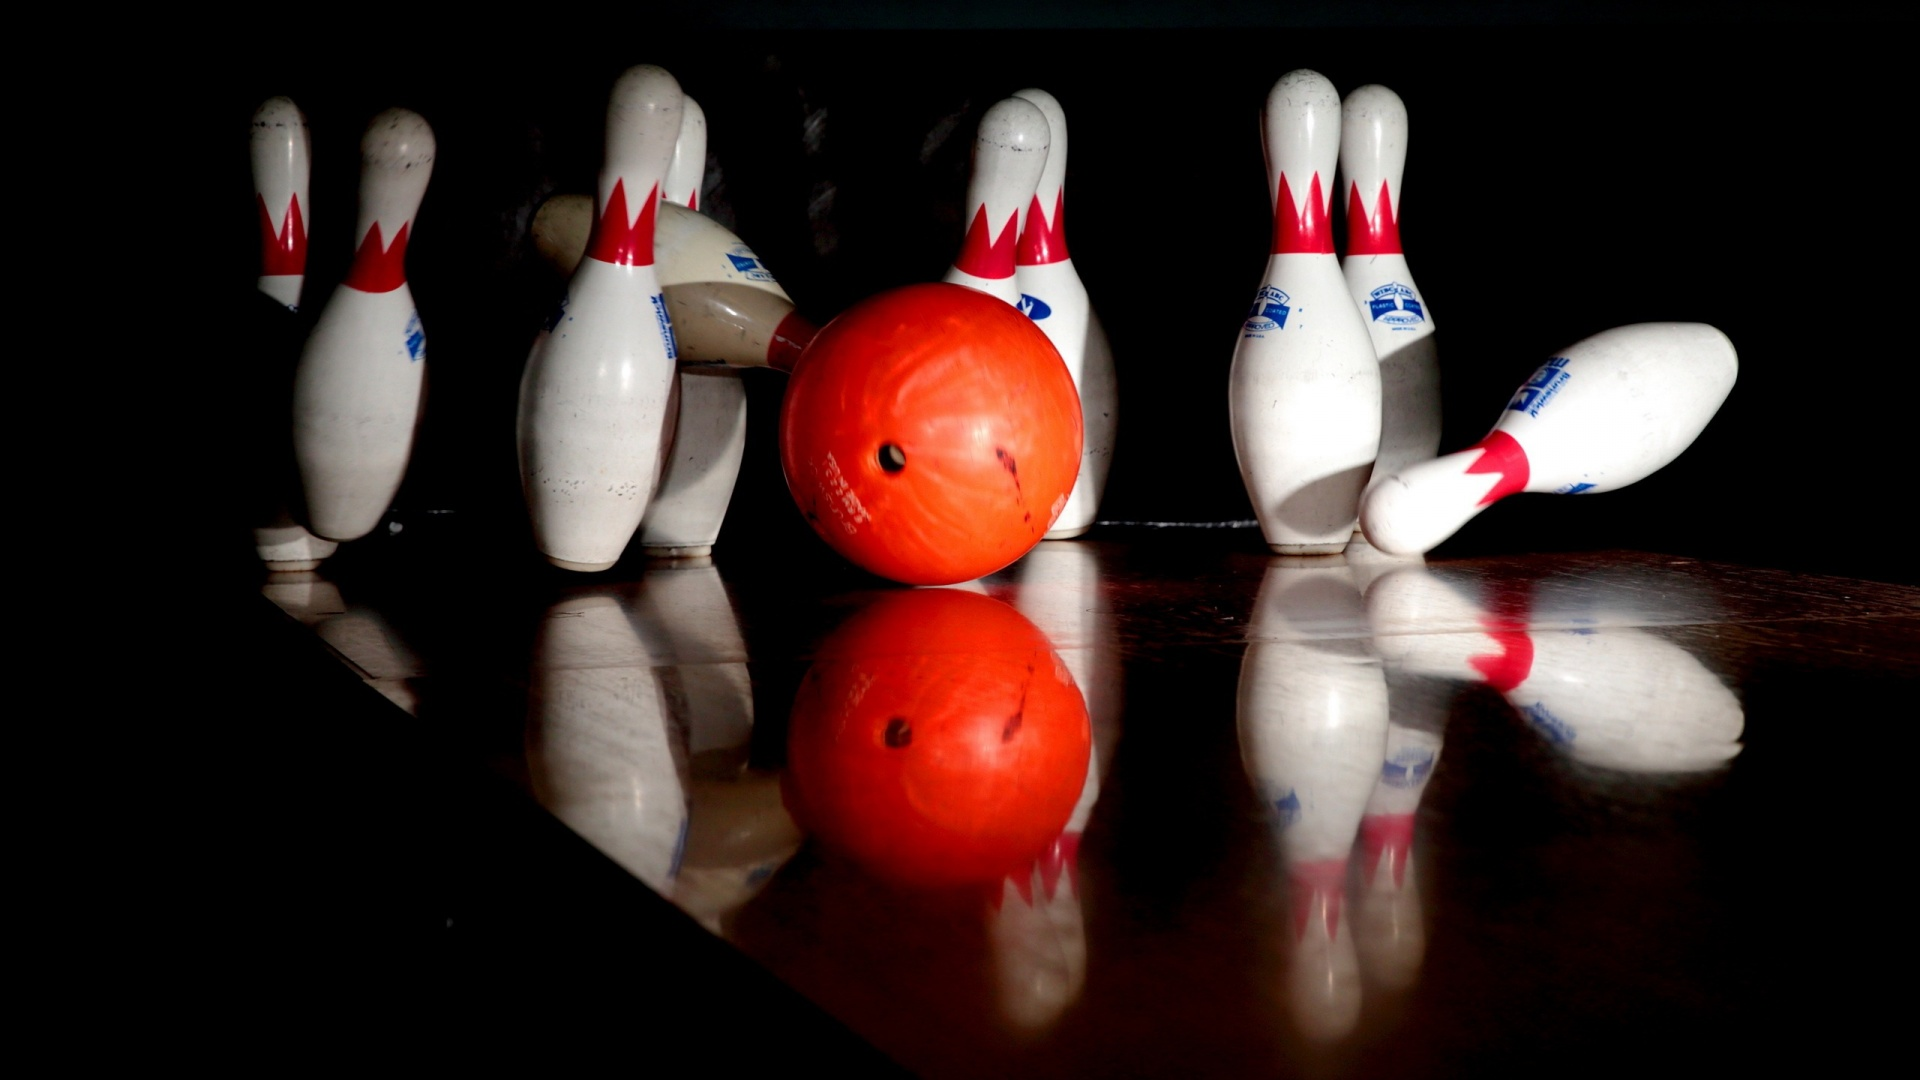 Pin On Sports Wallpaper: Bowling Skittles Sports Wallpapers